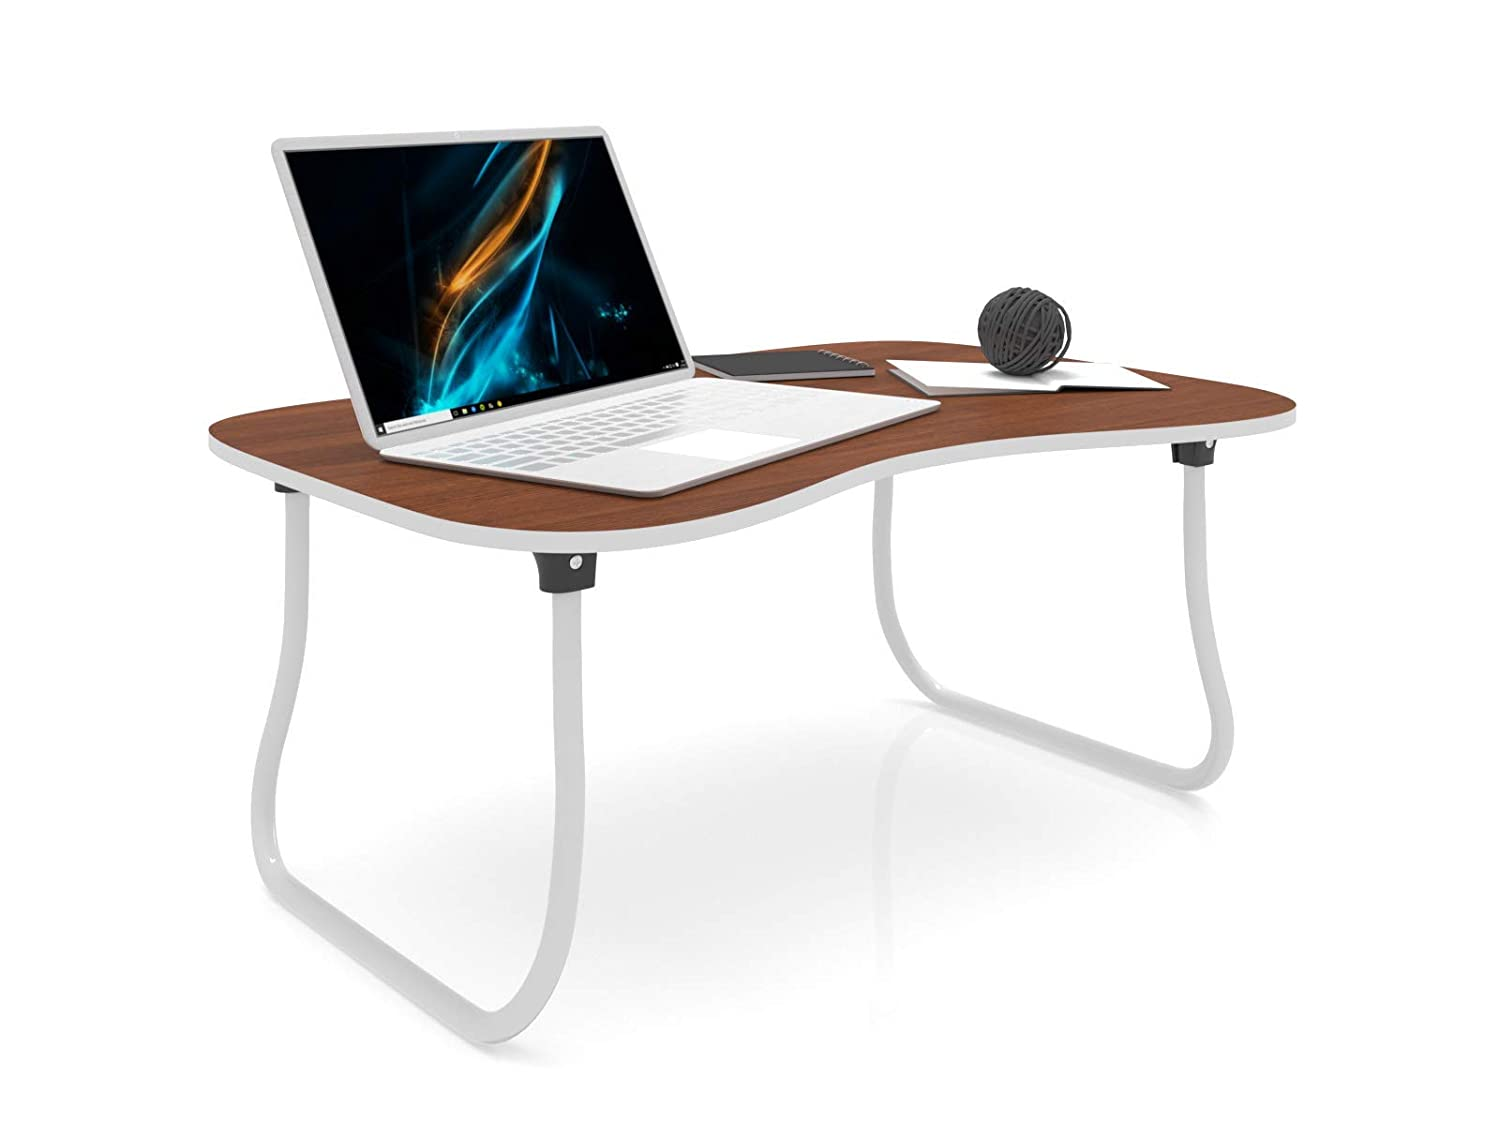 Forzza Zoey Laptop Table (Walnut) at Amazon ₹ 849.00